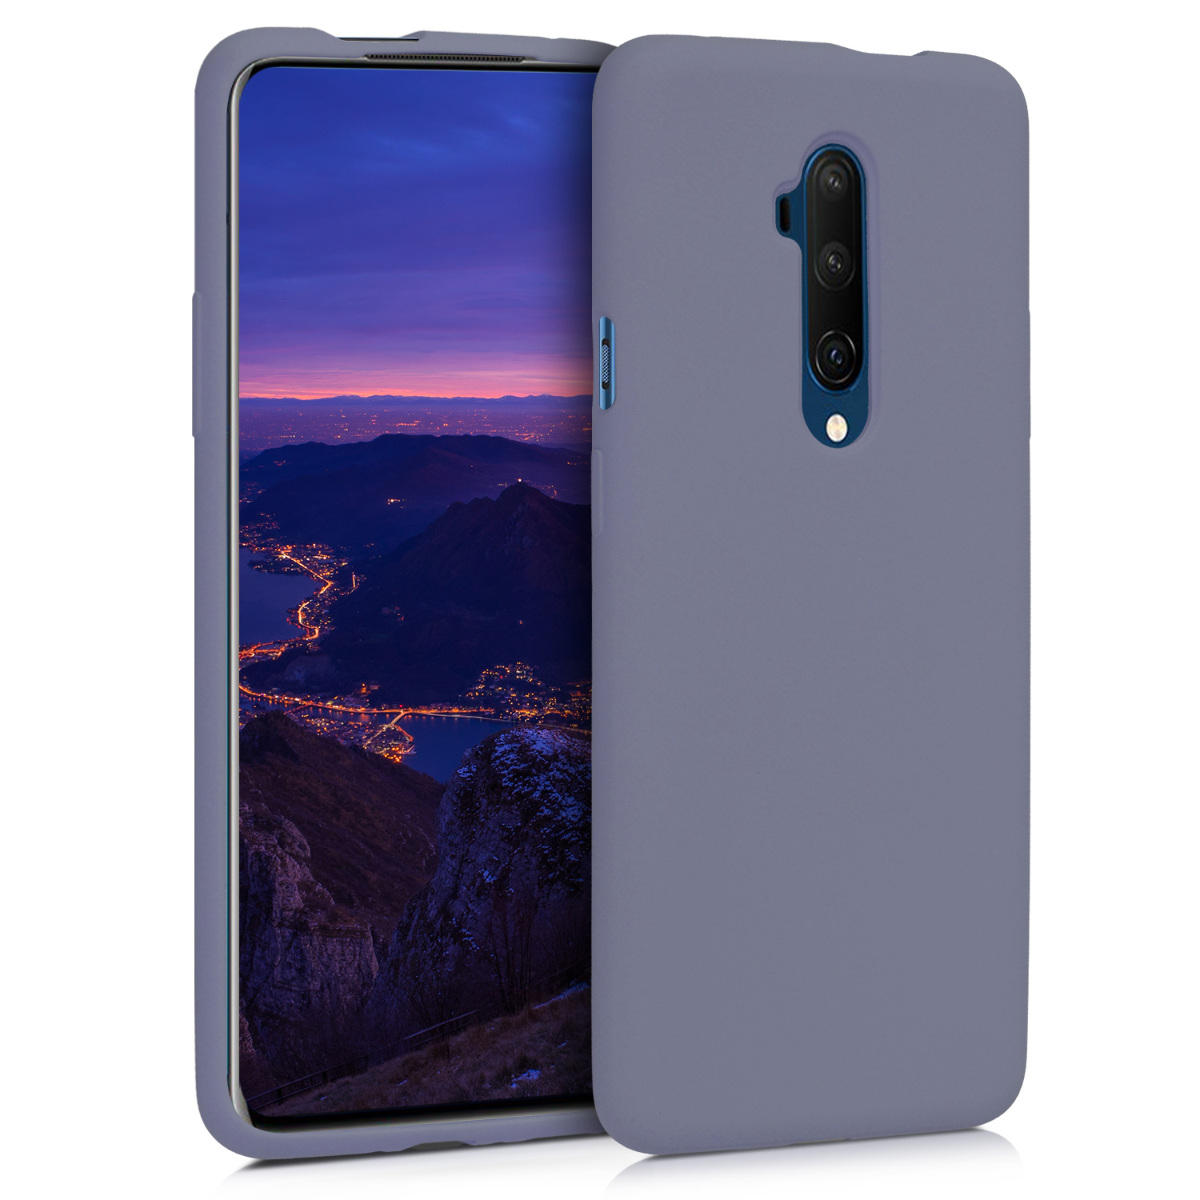 KW Θήκη Σιλικόνης OnePlus 7T Pro - Soft Flexible Rubber - Lavender Grey (49989.130)